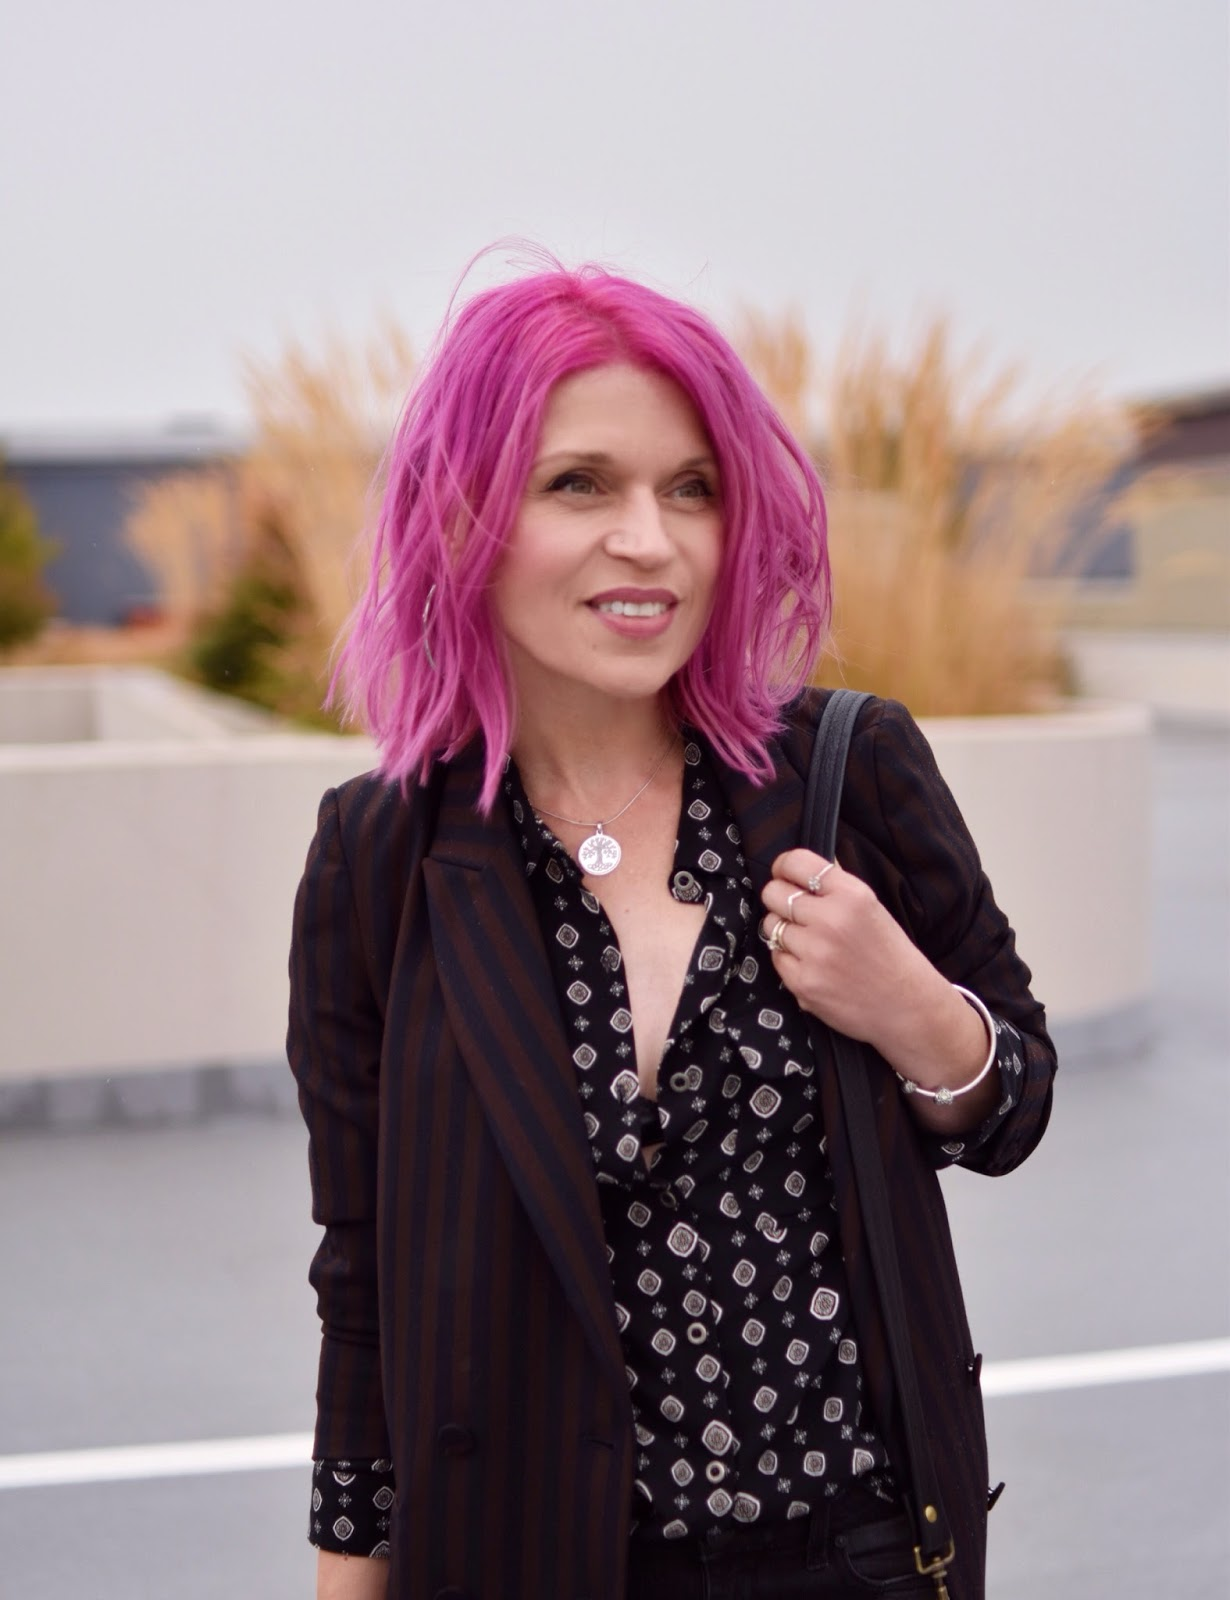 Monika Faulkner outfit inspiration - black patterned shirt, black and maroon striped suit jacket, fuchsia hair